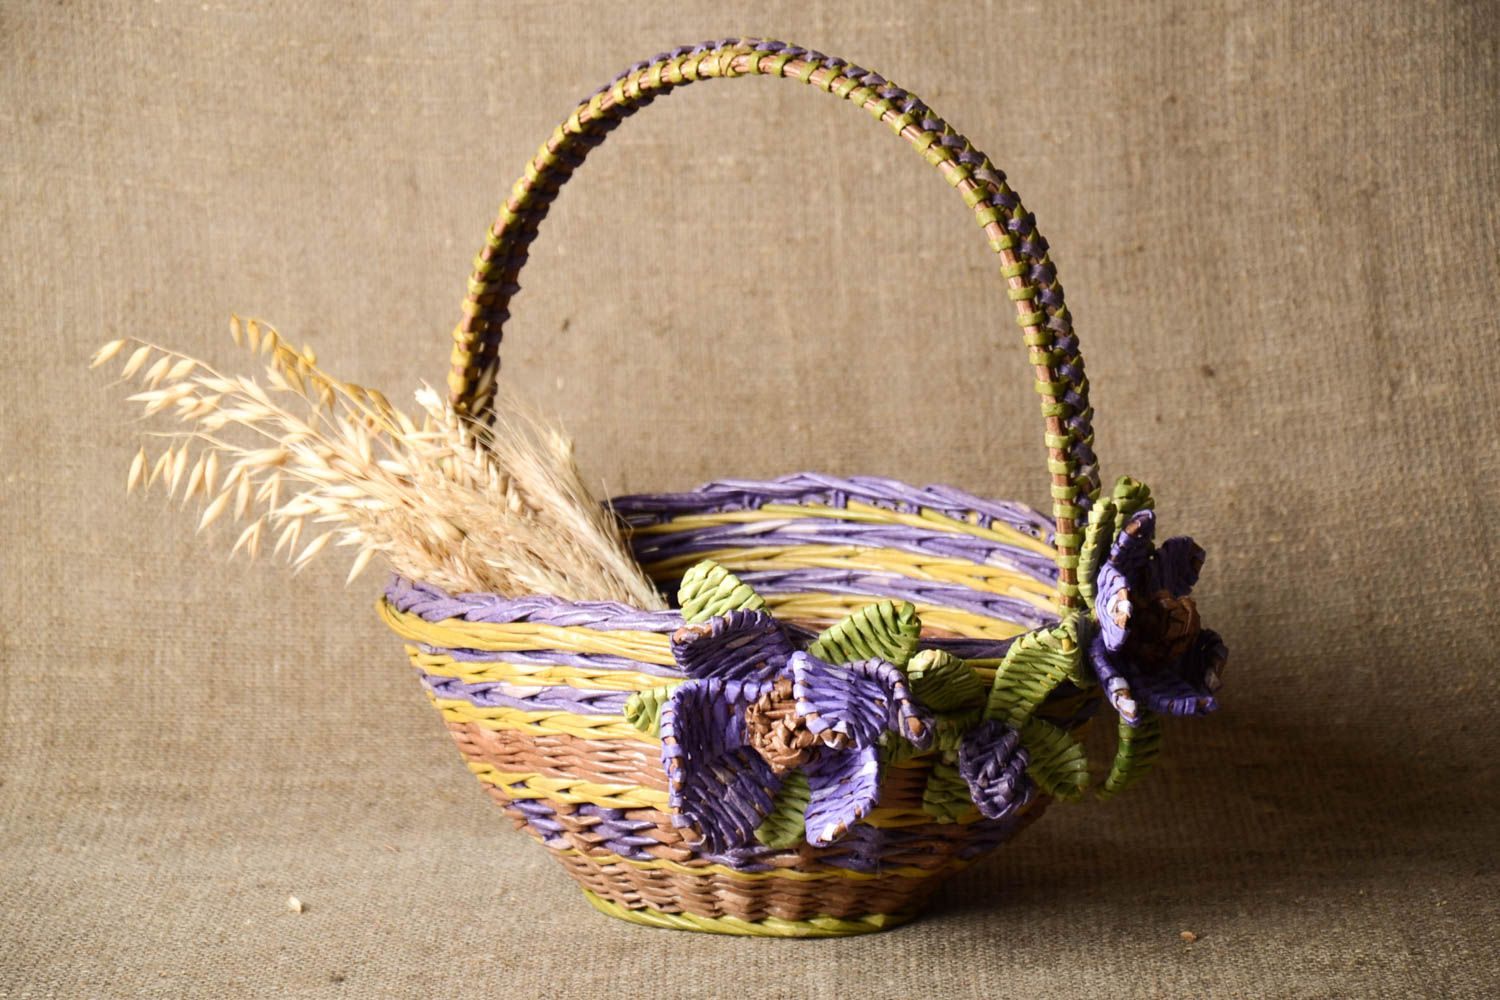 buy detail product for sell hot decor baskets decorative gift natural wedding